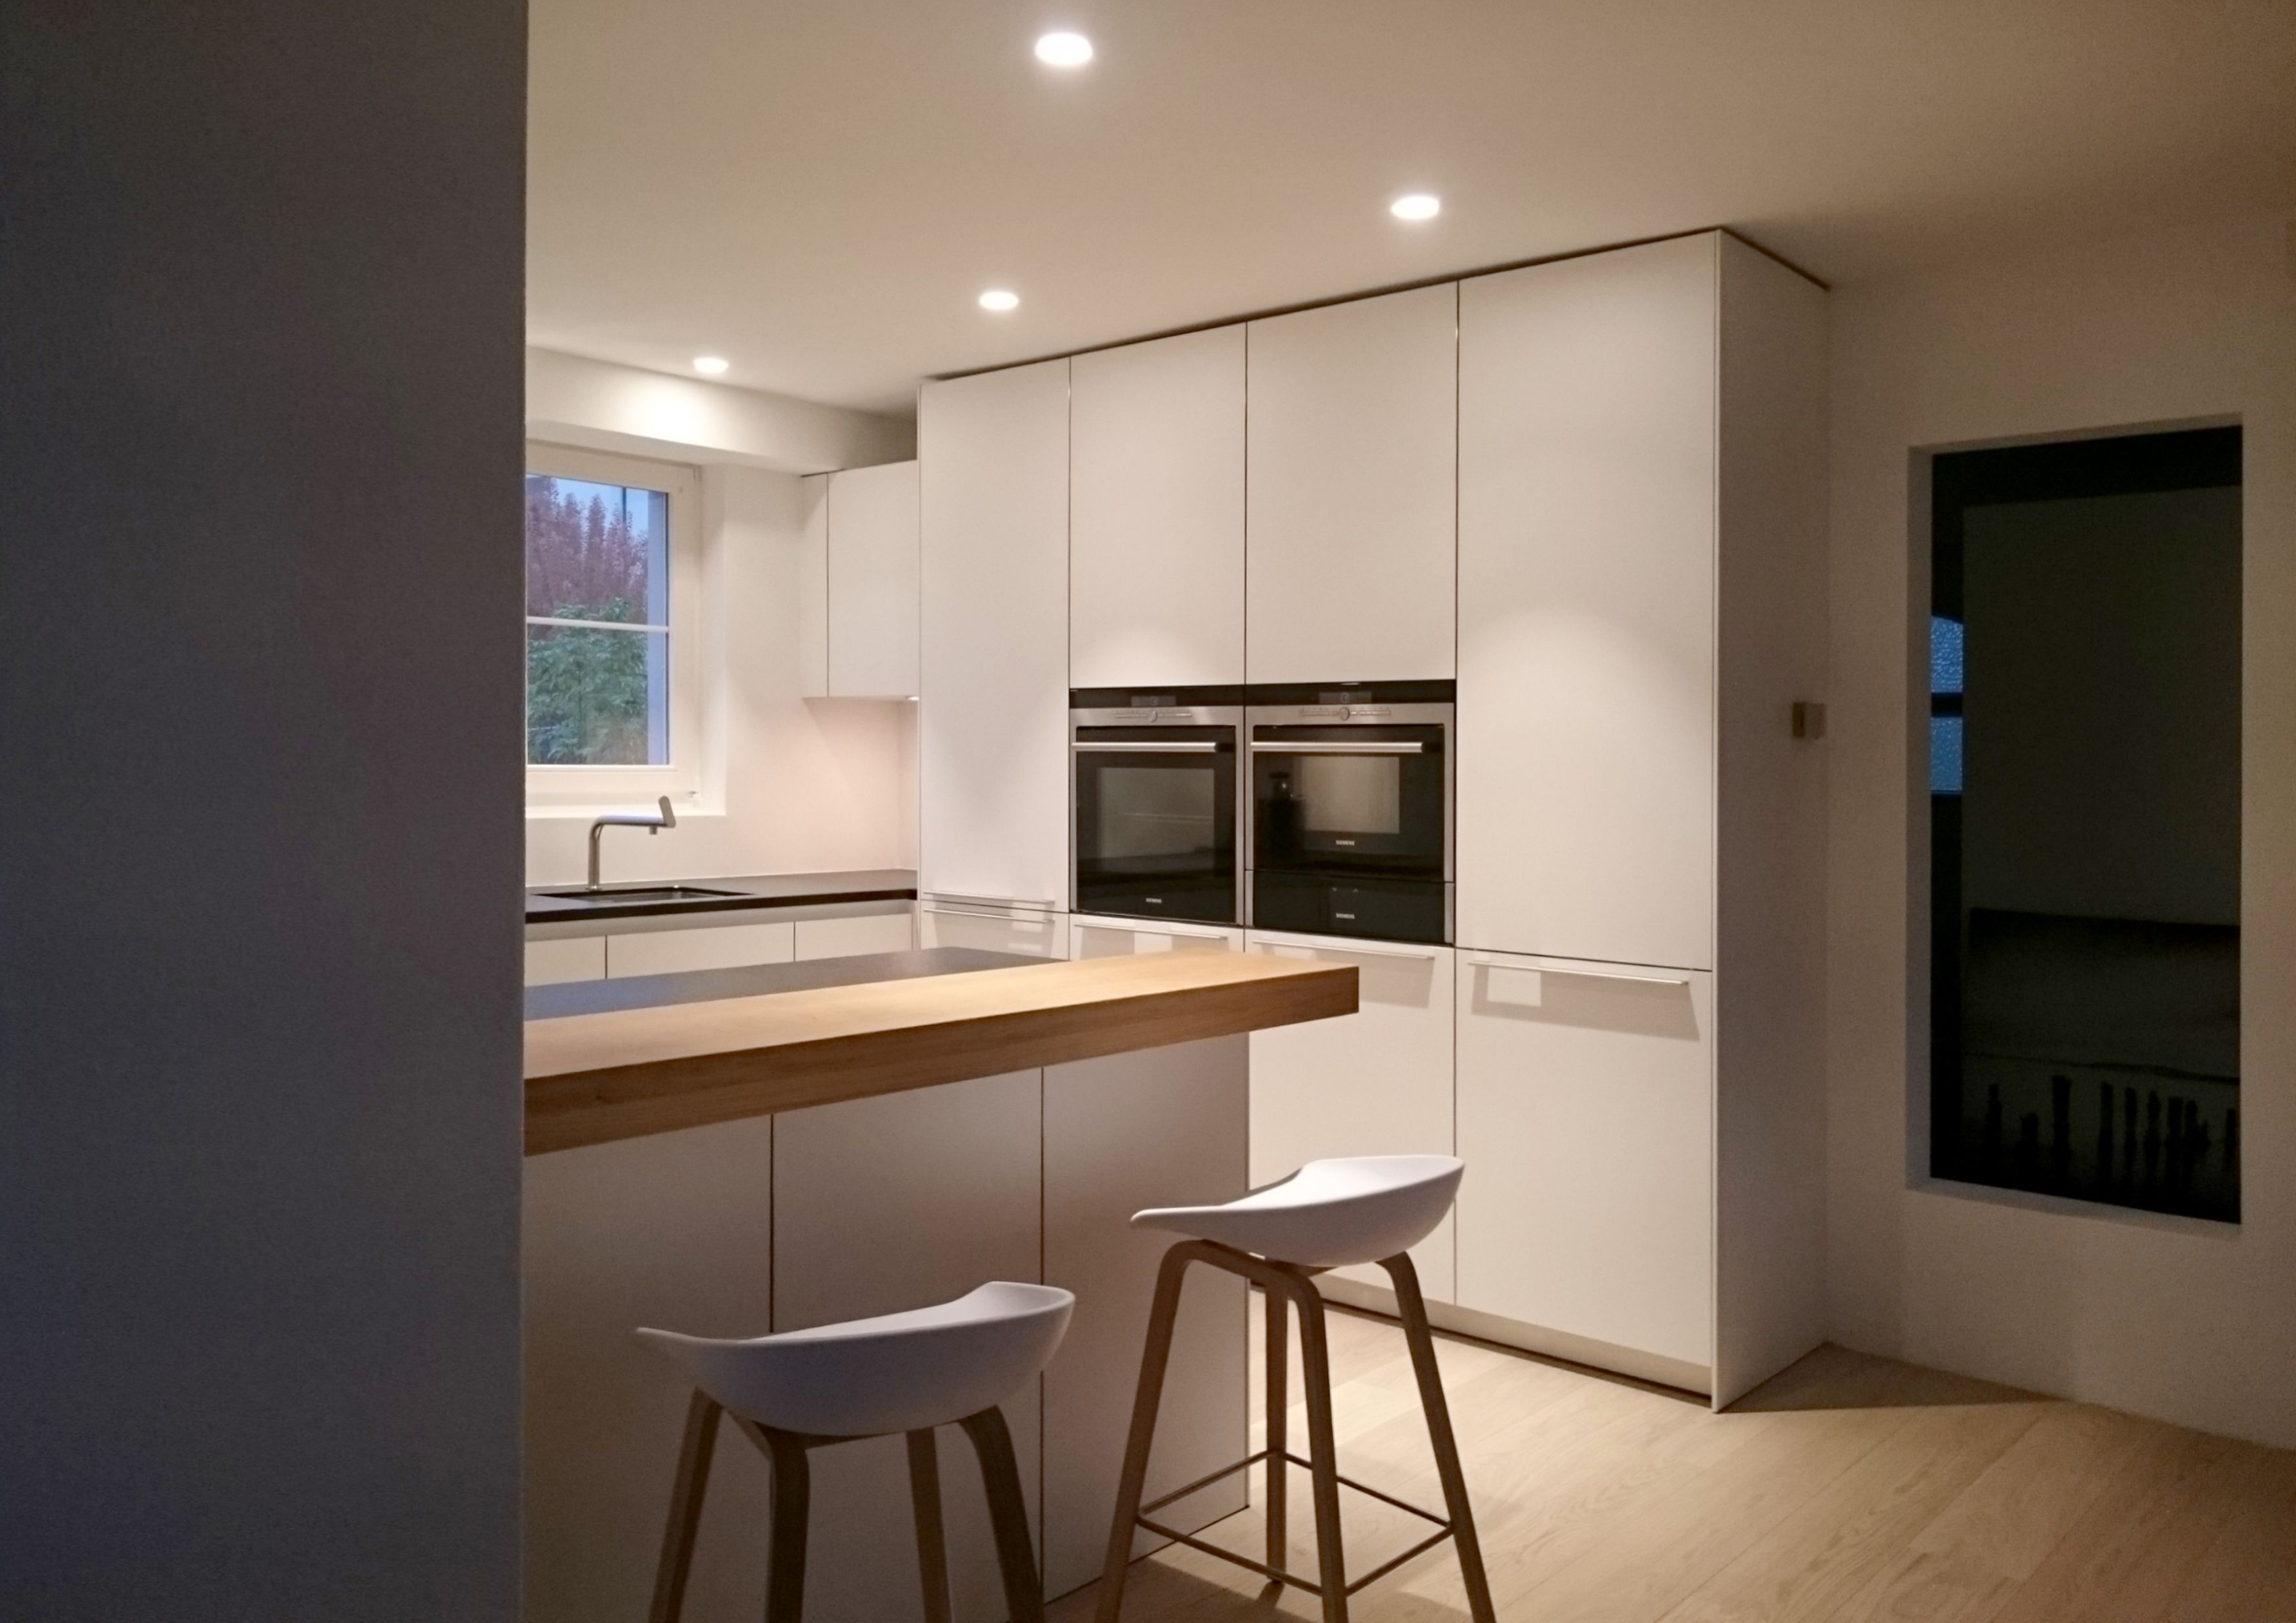 Innenarchitektur | Küche Interior Design | Kitchen bulthaup b3 + HAY ...